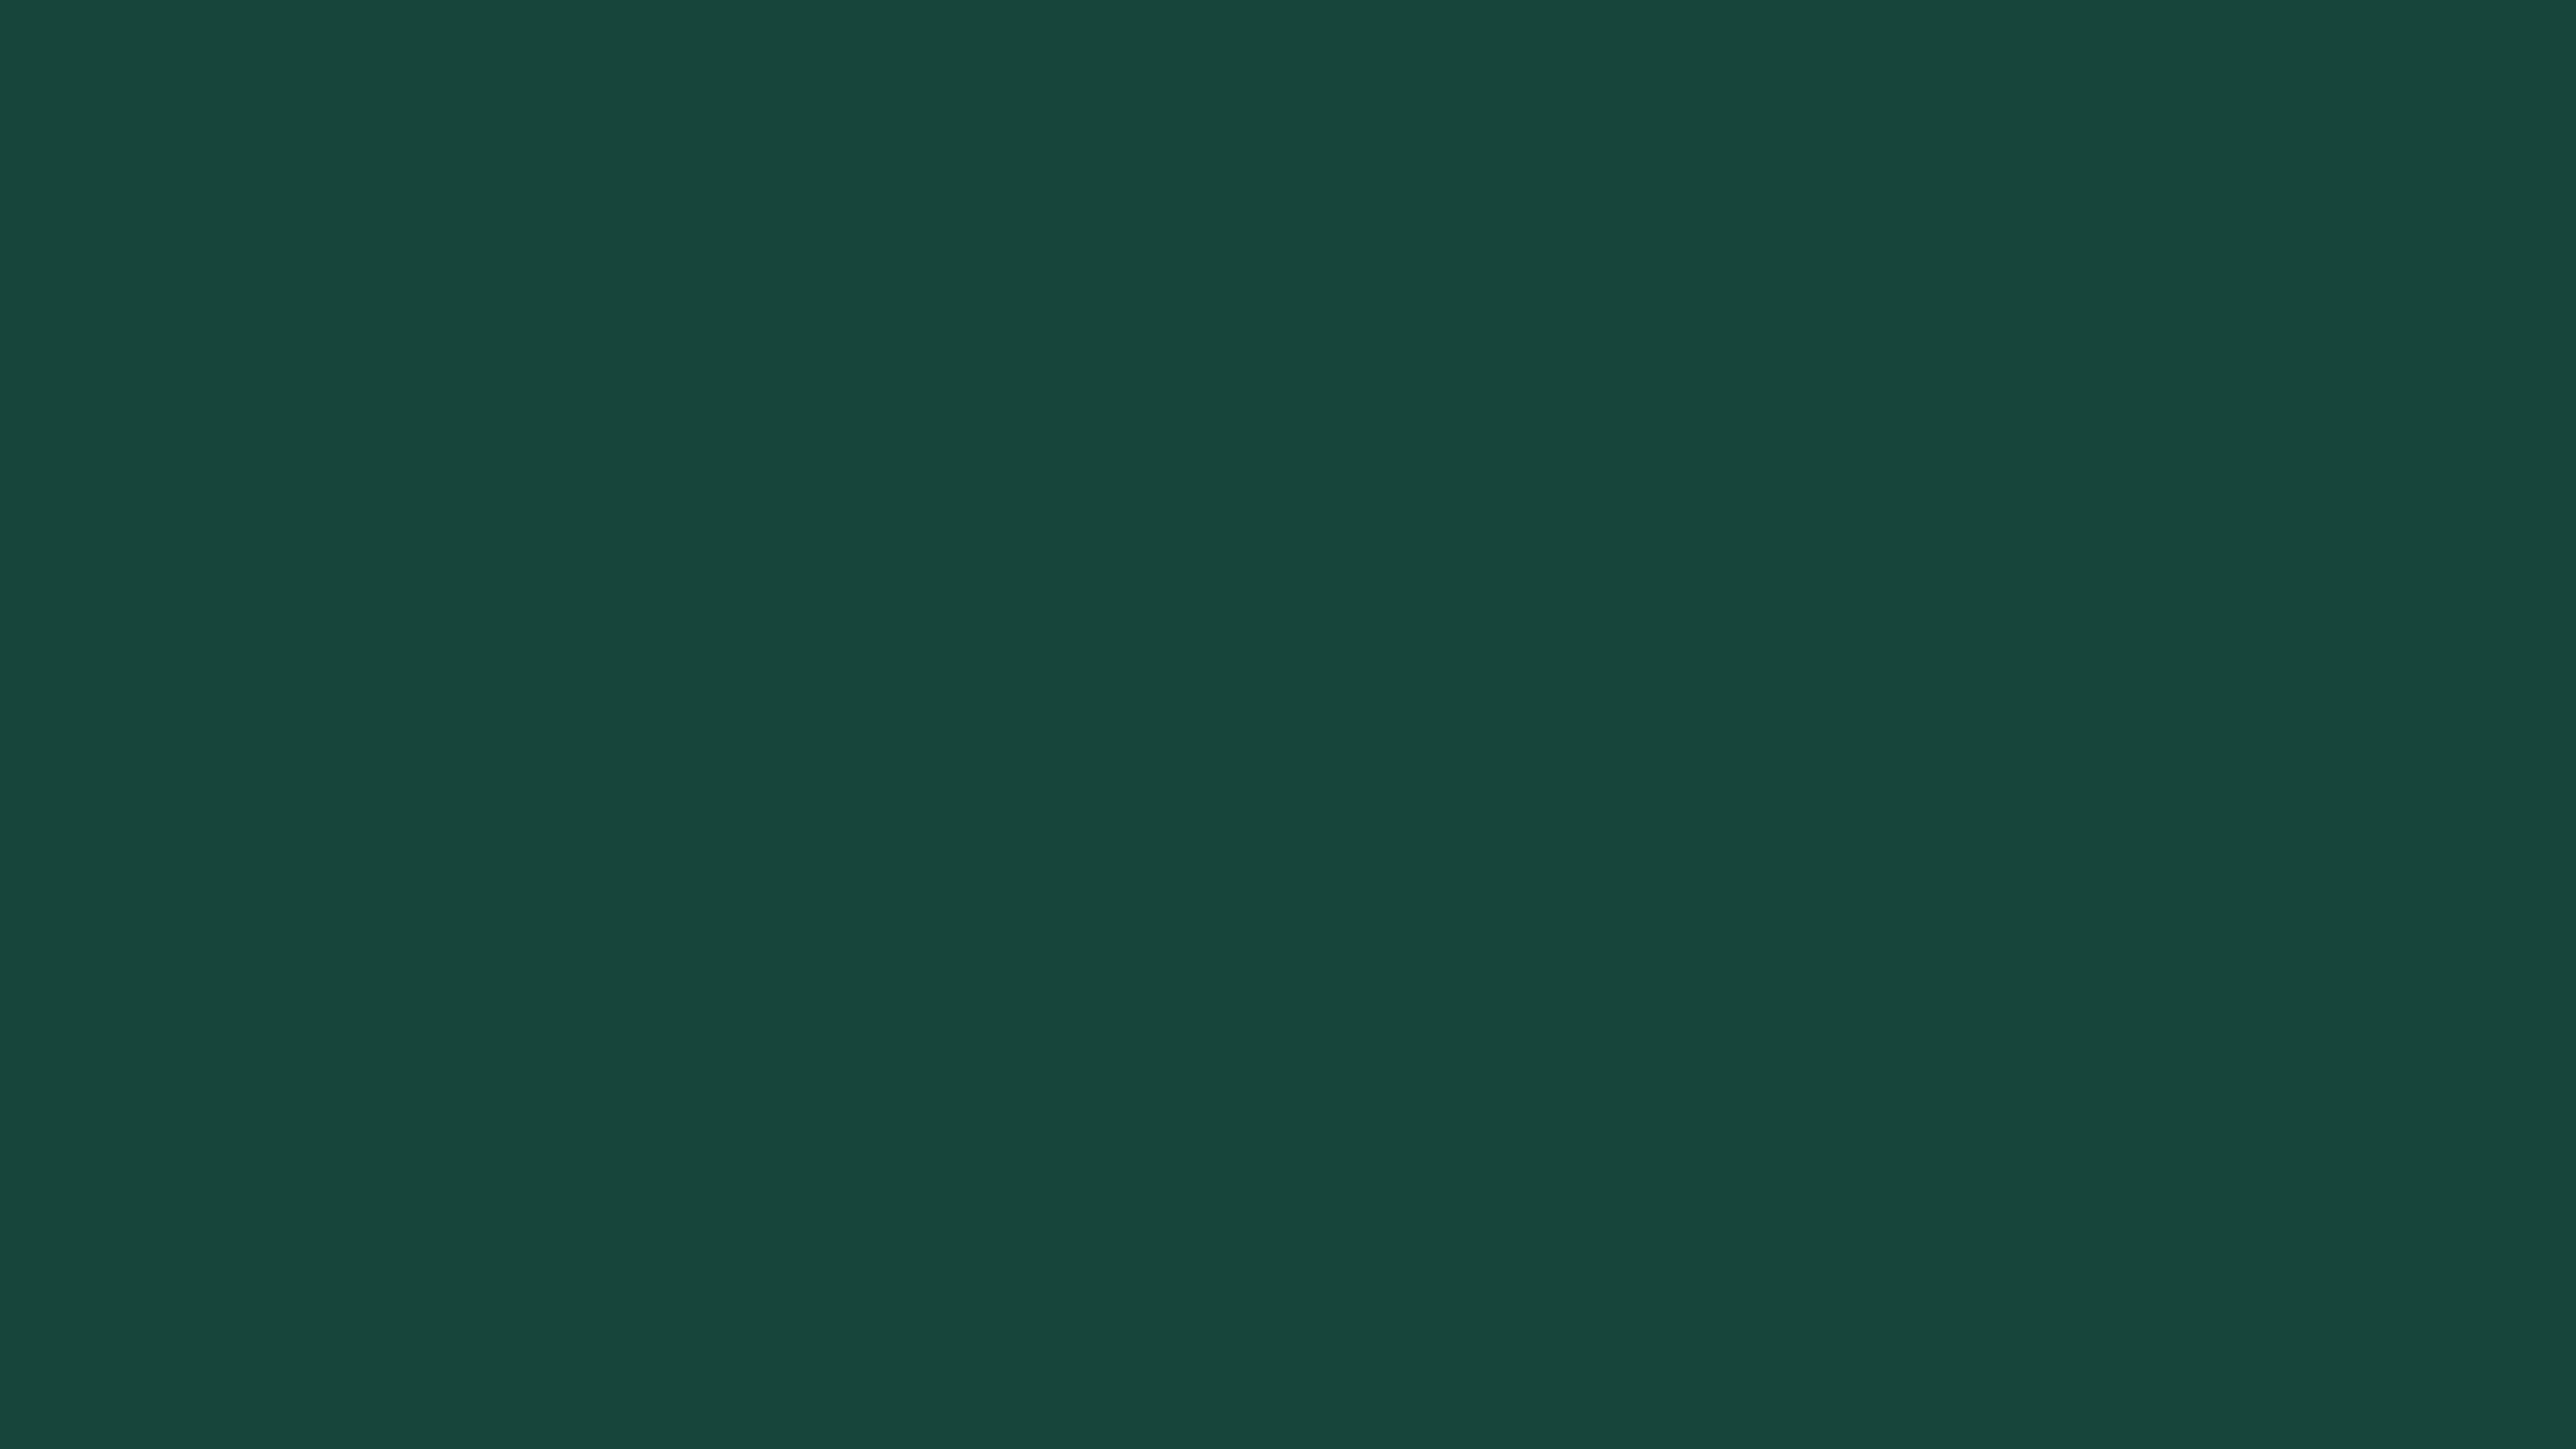 5120x2880 MSU Green Solid Color Background